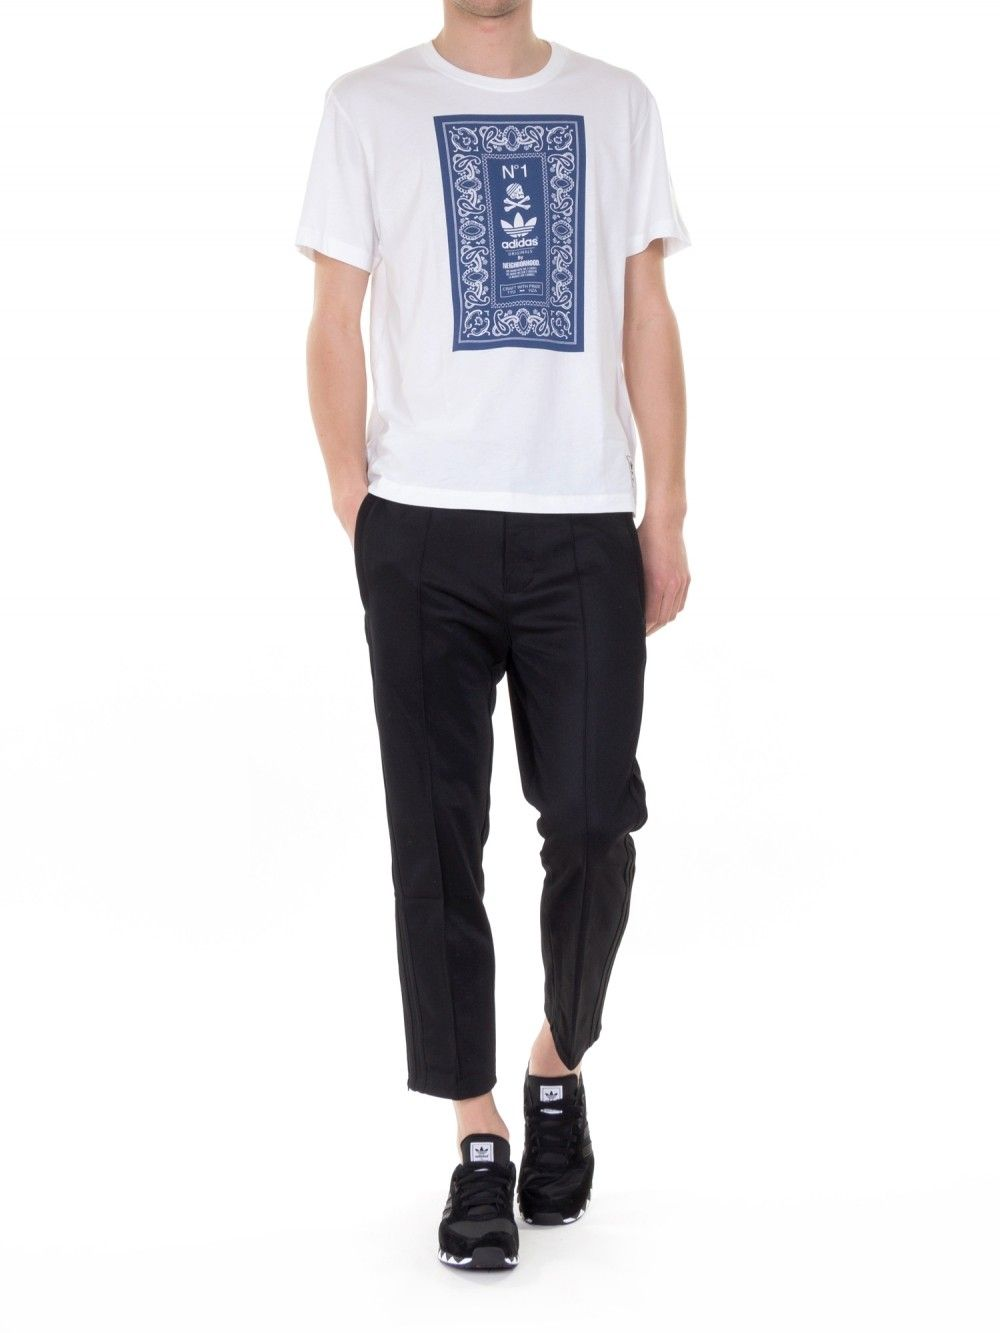 2a64350b7141 ADIDAS ORIGINALS X NEIGHBORHOOD Tailored Cropped Pants   STYLE - His ...